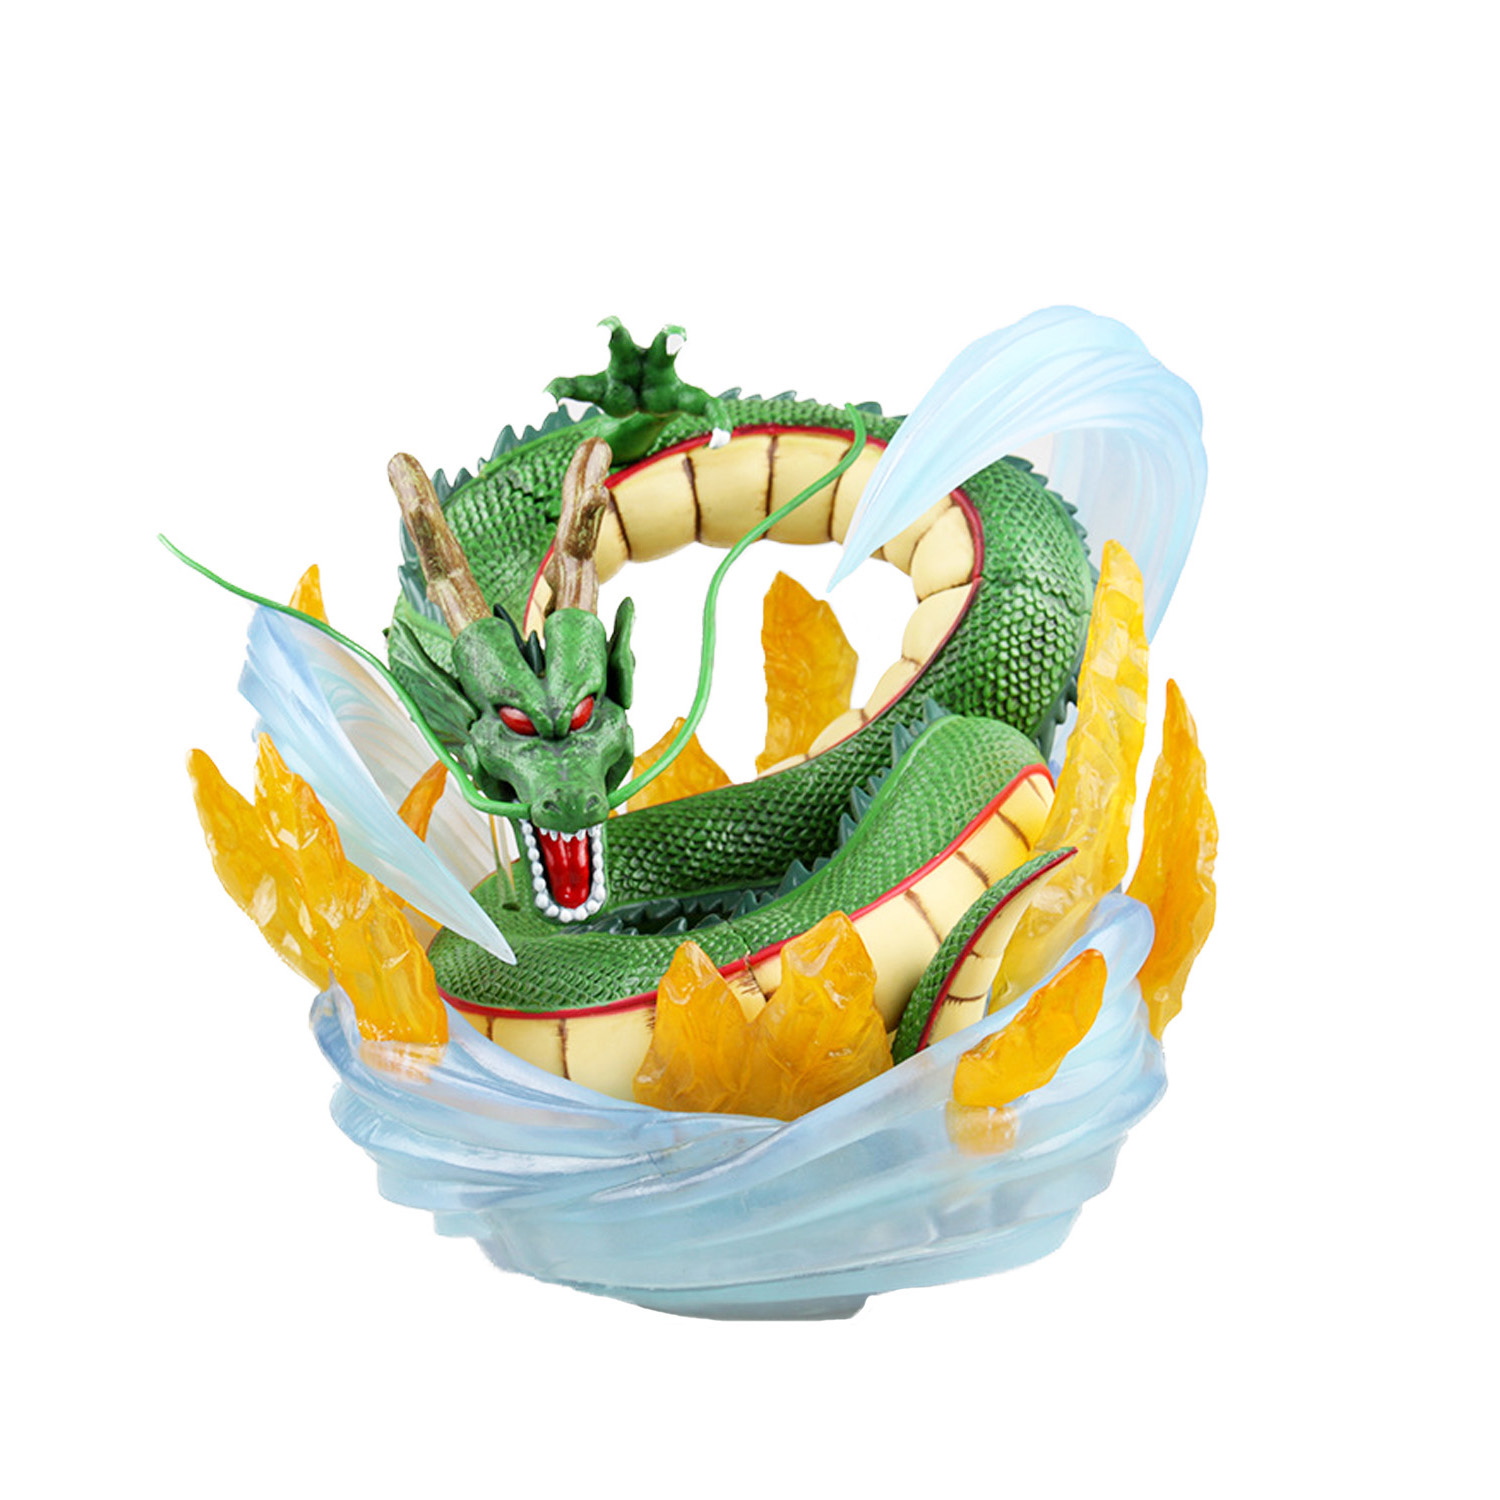 Chanycore Anime Dragon Ball Z Shenron AAAAA Dragon Action Figures PVC Limit Boxed For Kids Collectible&Gift Toy anime dragon ball z shenlong shenron with balls pvc action figure collectible model toy doll 14cm kt098